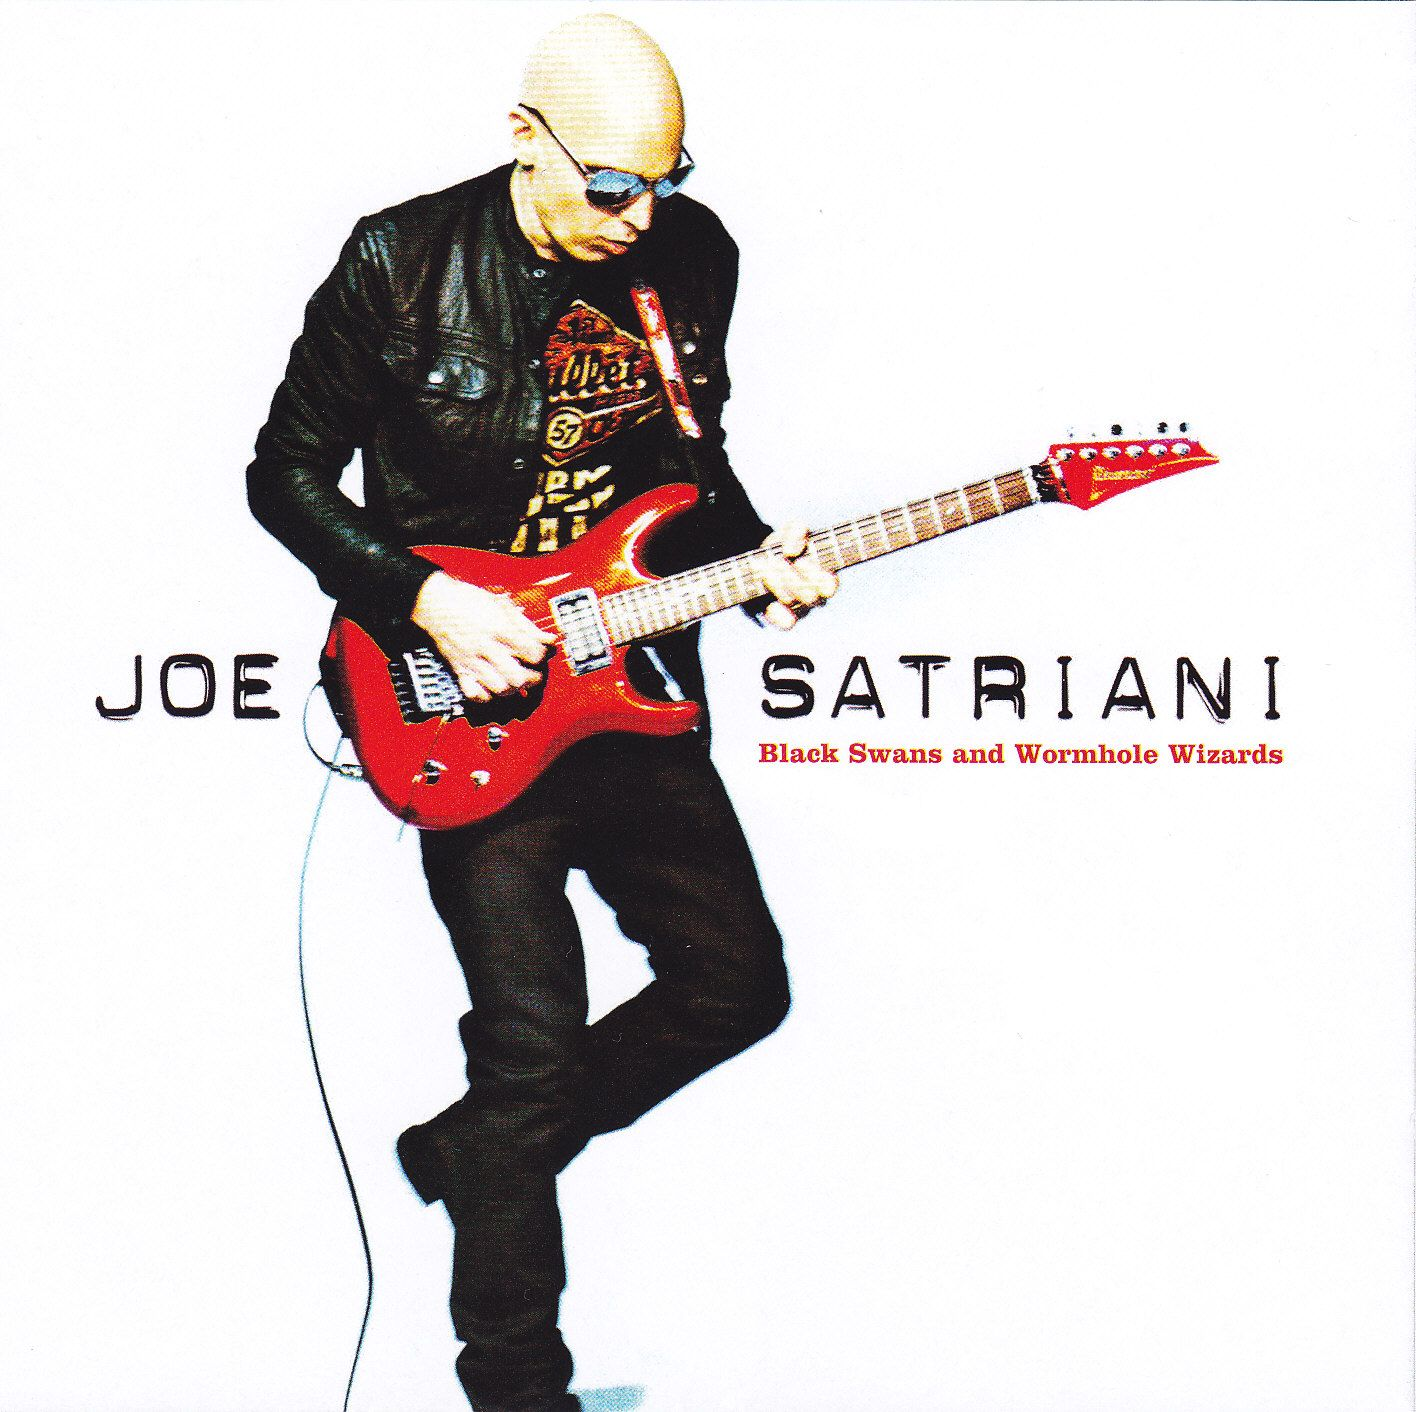 Joe Satriani - Black Swans And Wormhole Wizards album cover